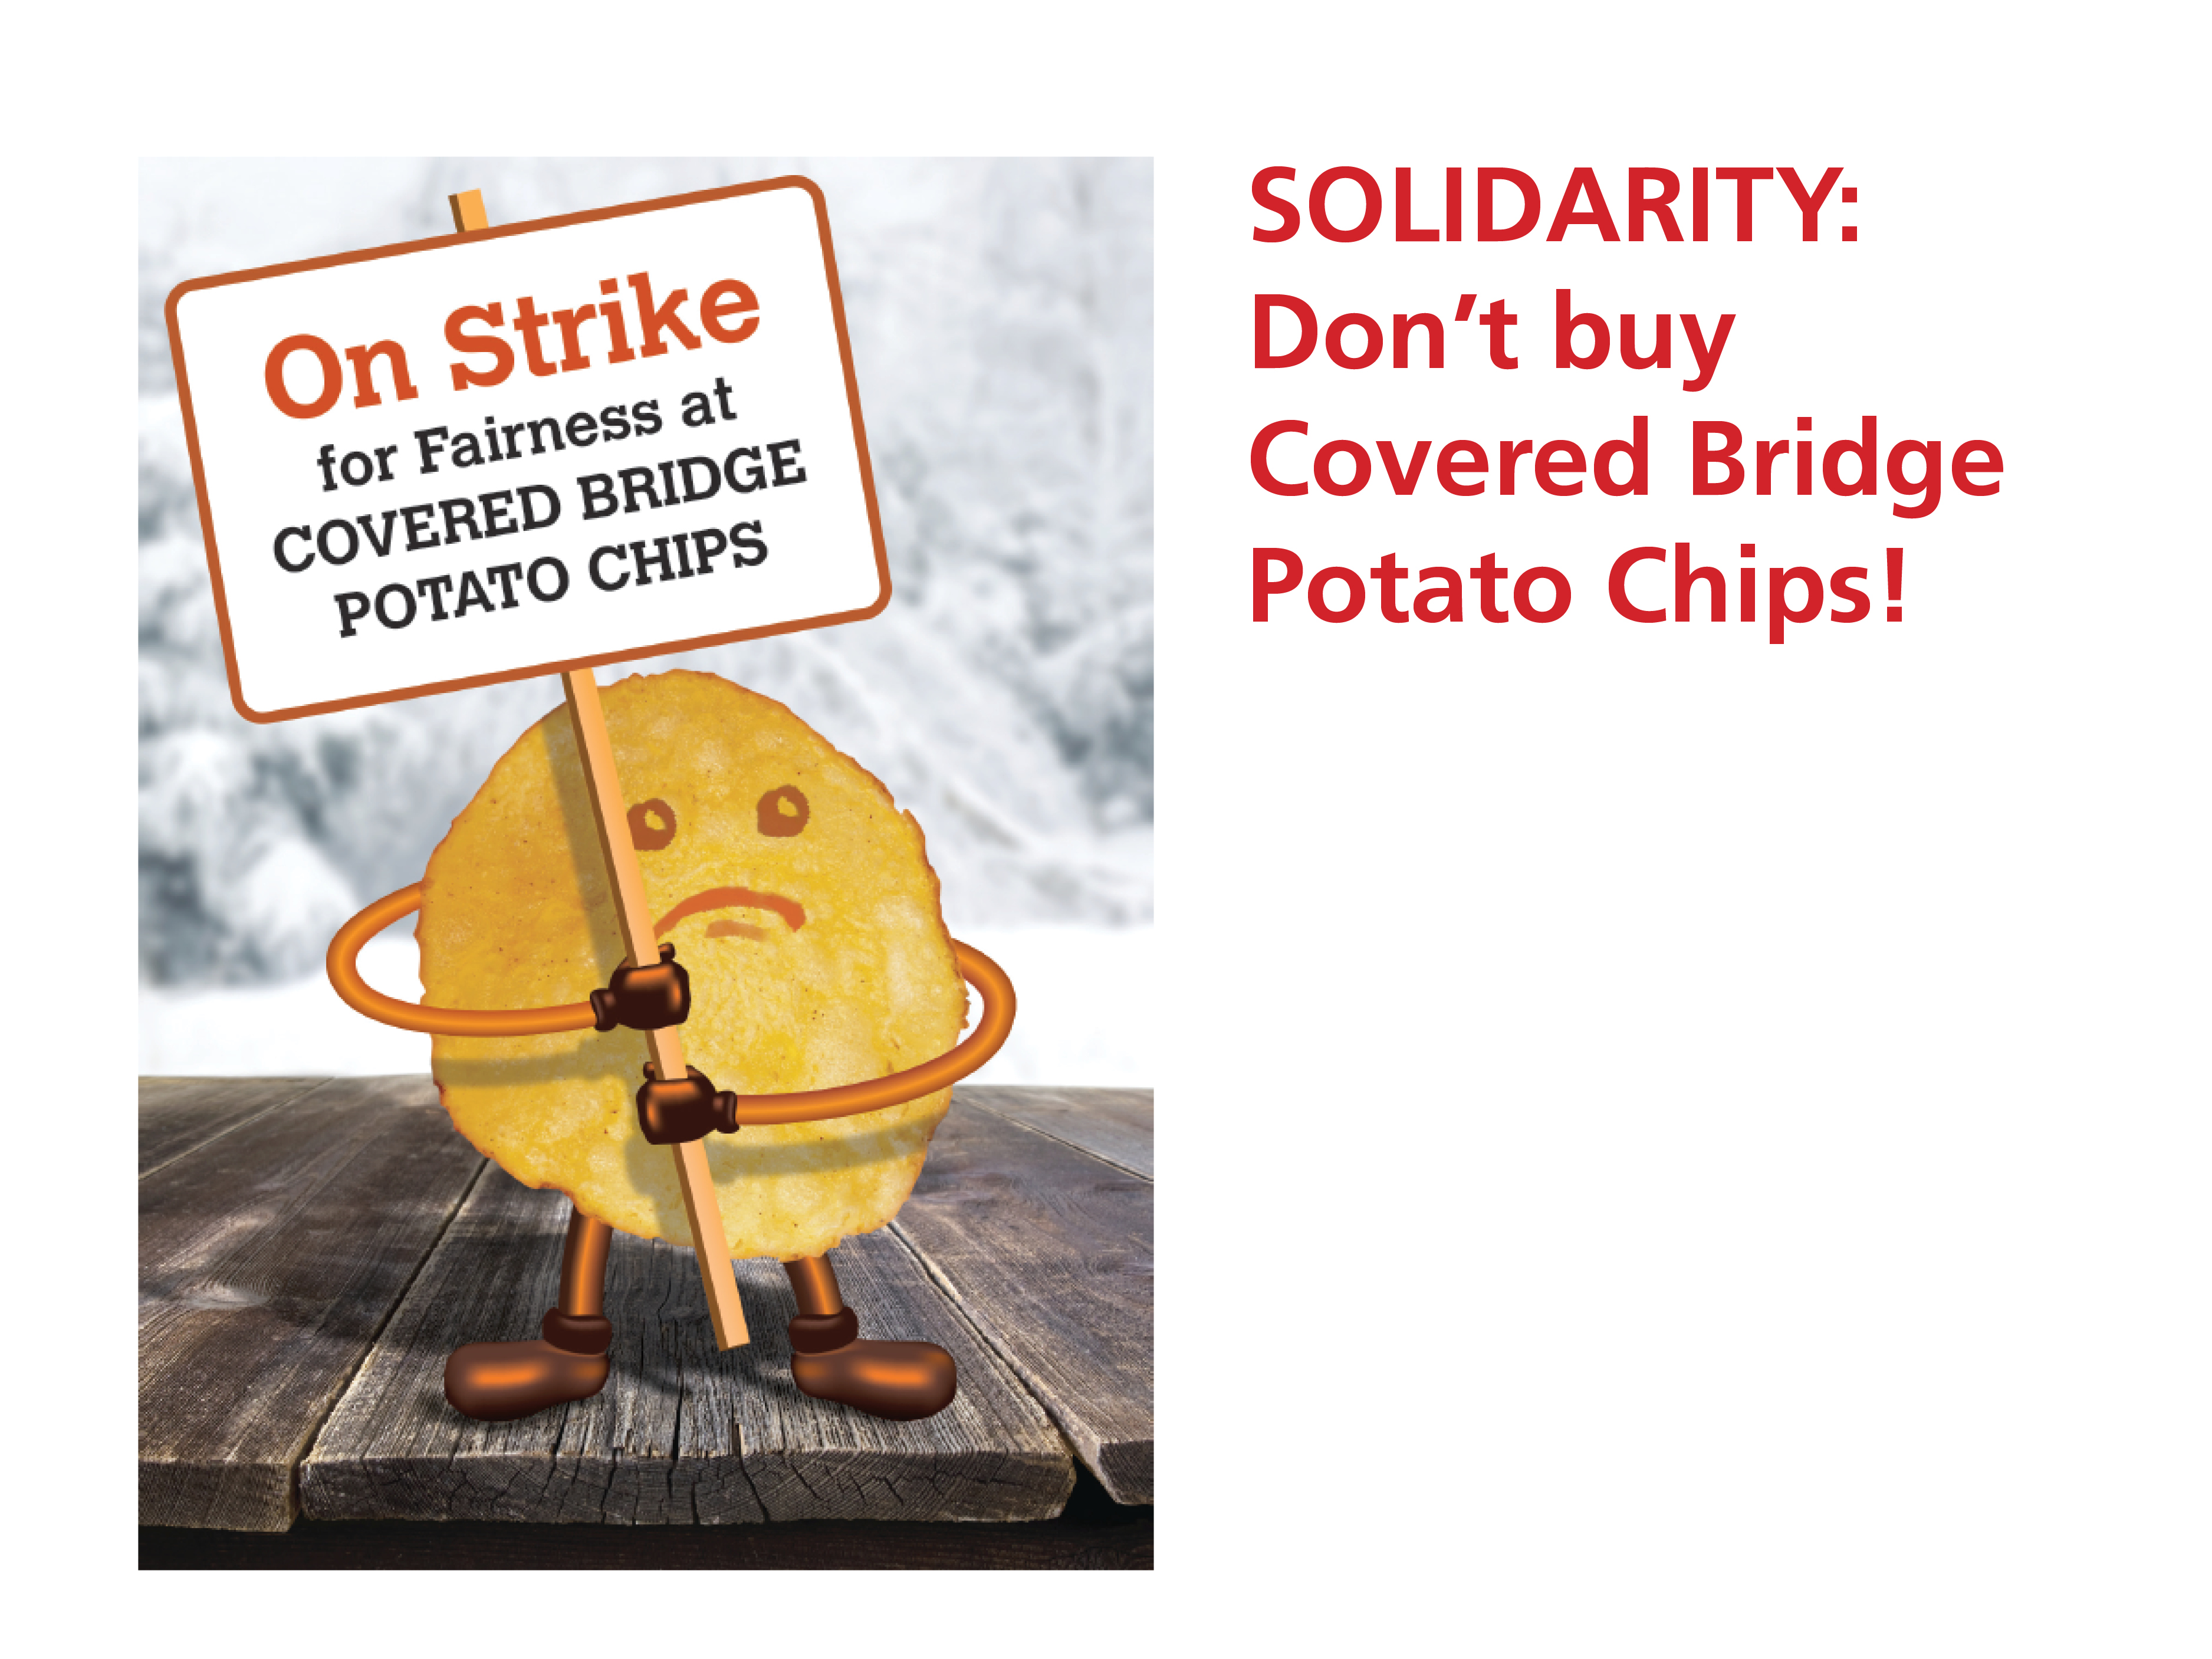 Covered Bridge Potato Chips workers are on strike